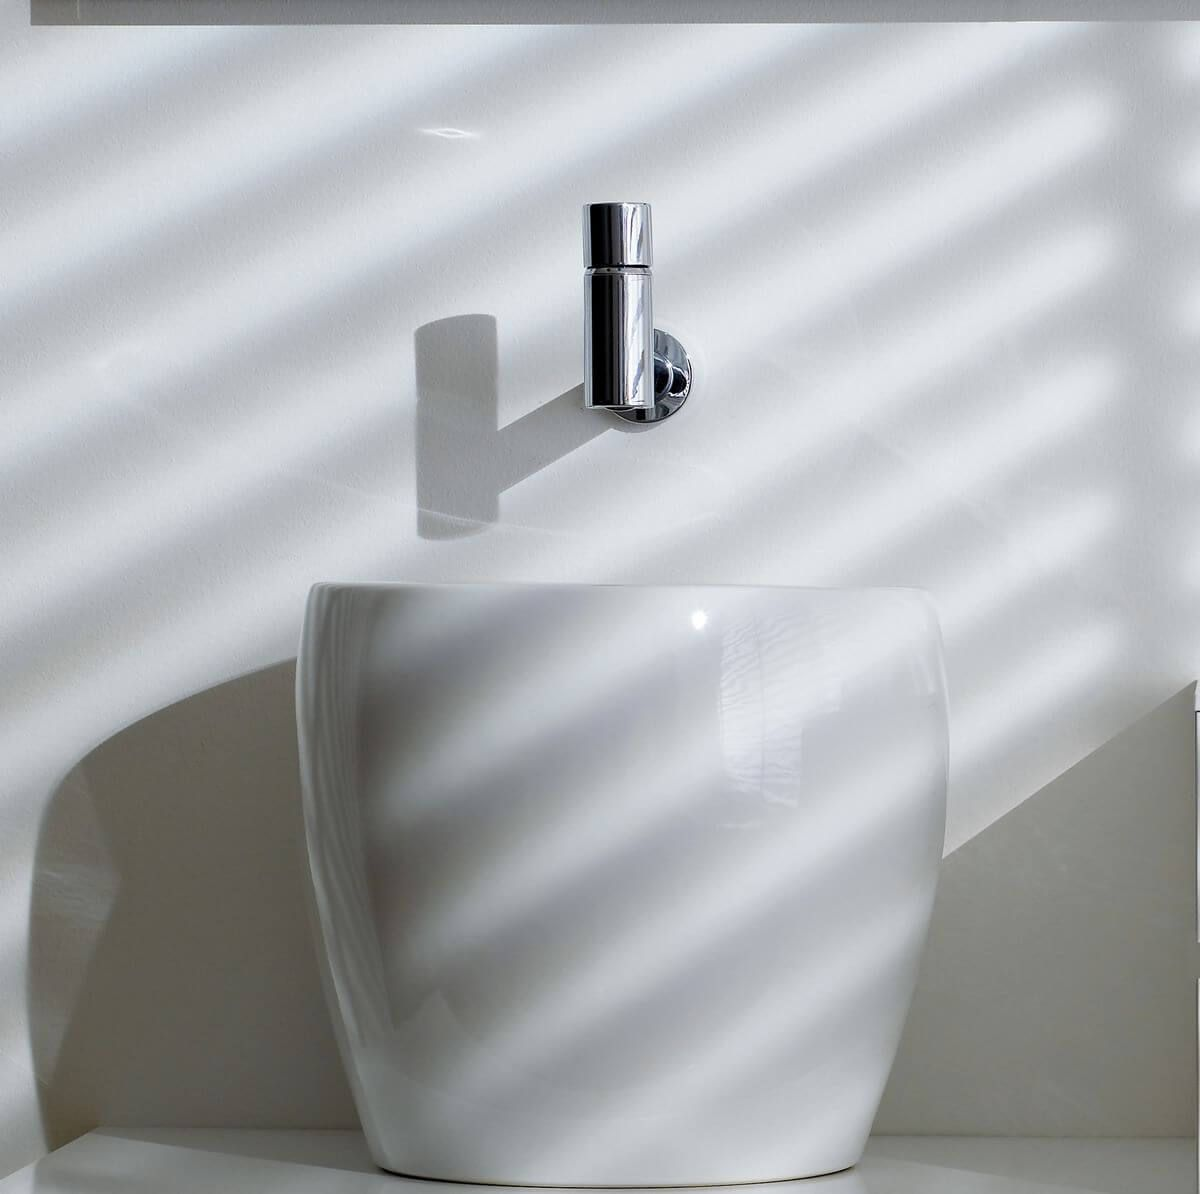 Wall mounted faucet from Oras Il Bagno Alessi One